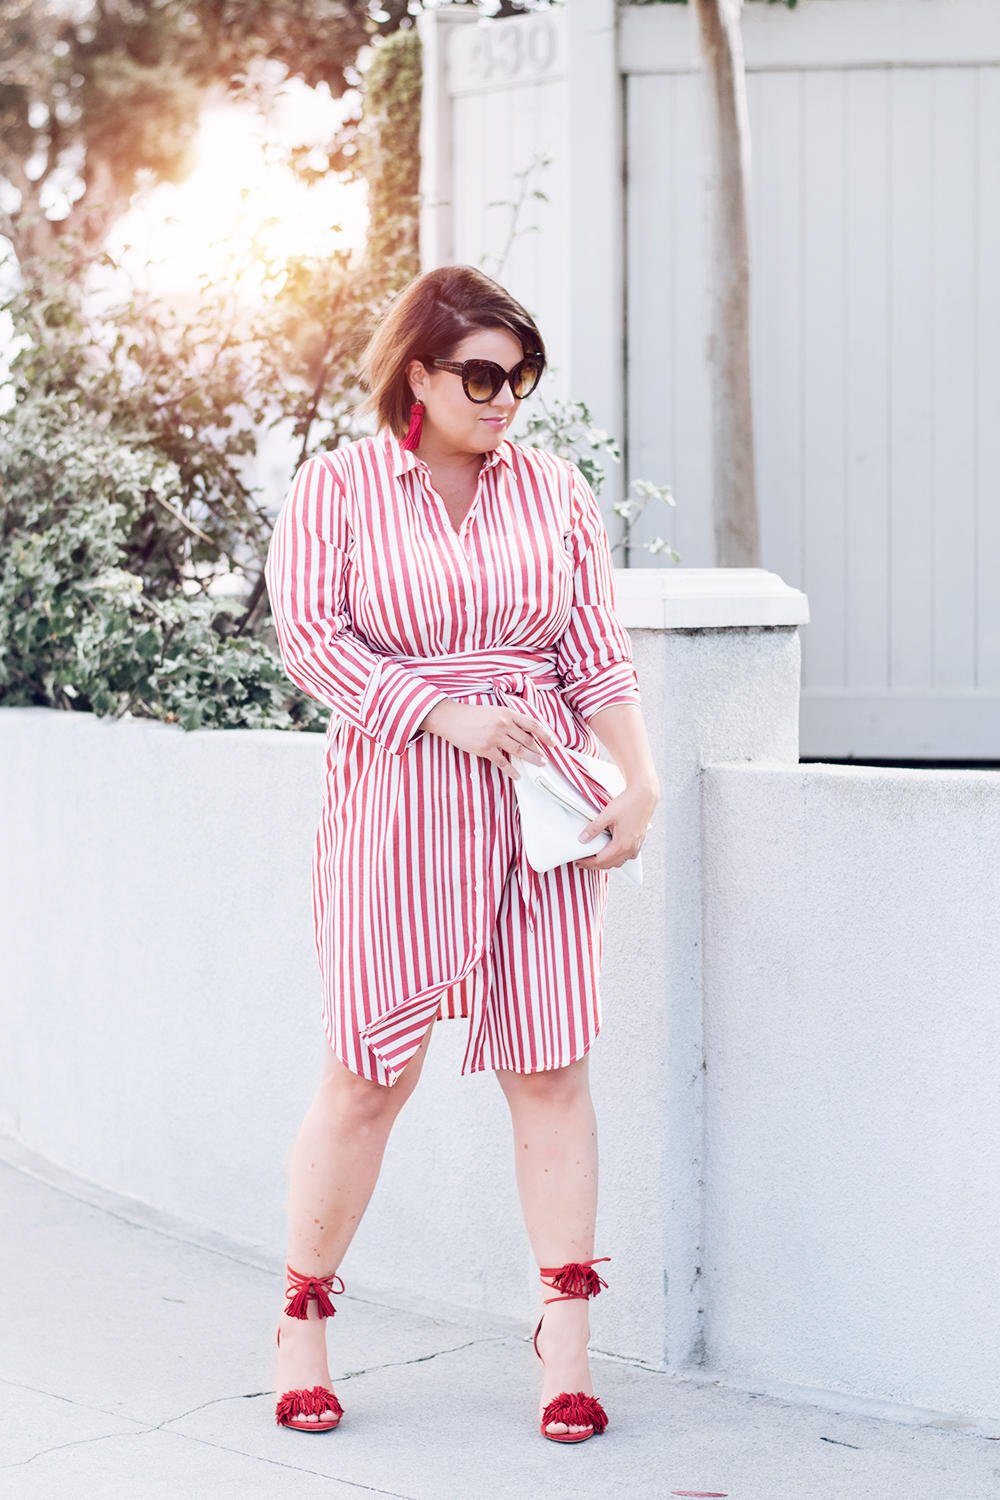 Red Stripes for Summer Striped Red Dress Who What Wear Street Style Looks to Copy in 2018 Barefoot in LA Fashion Blog Style Ideas Outfits0173